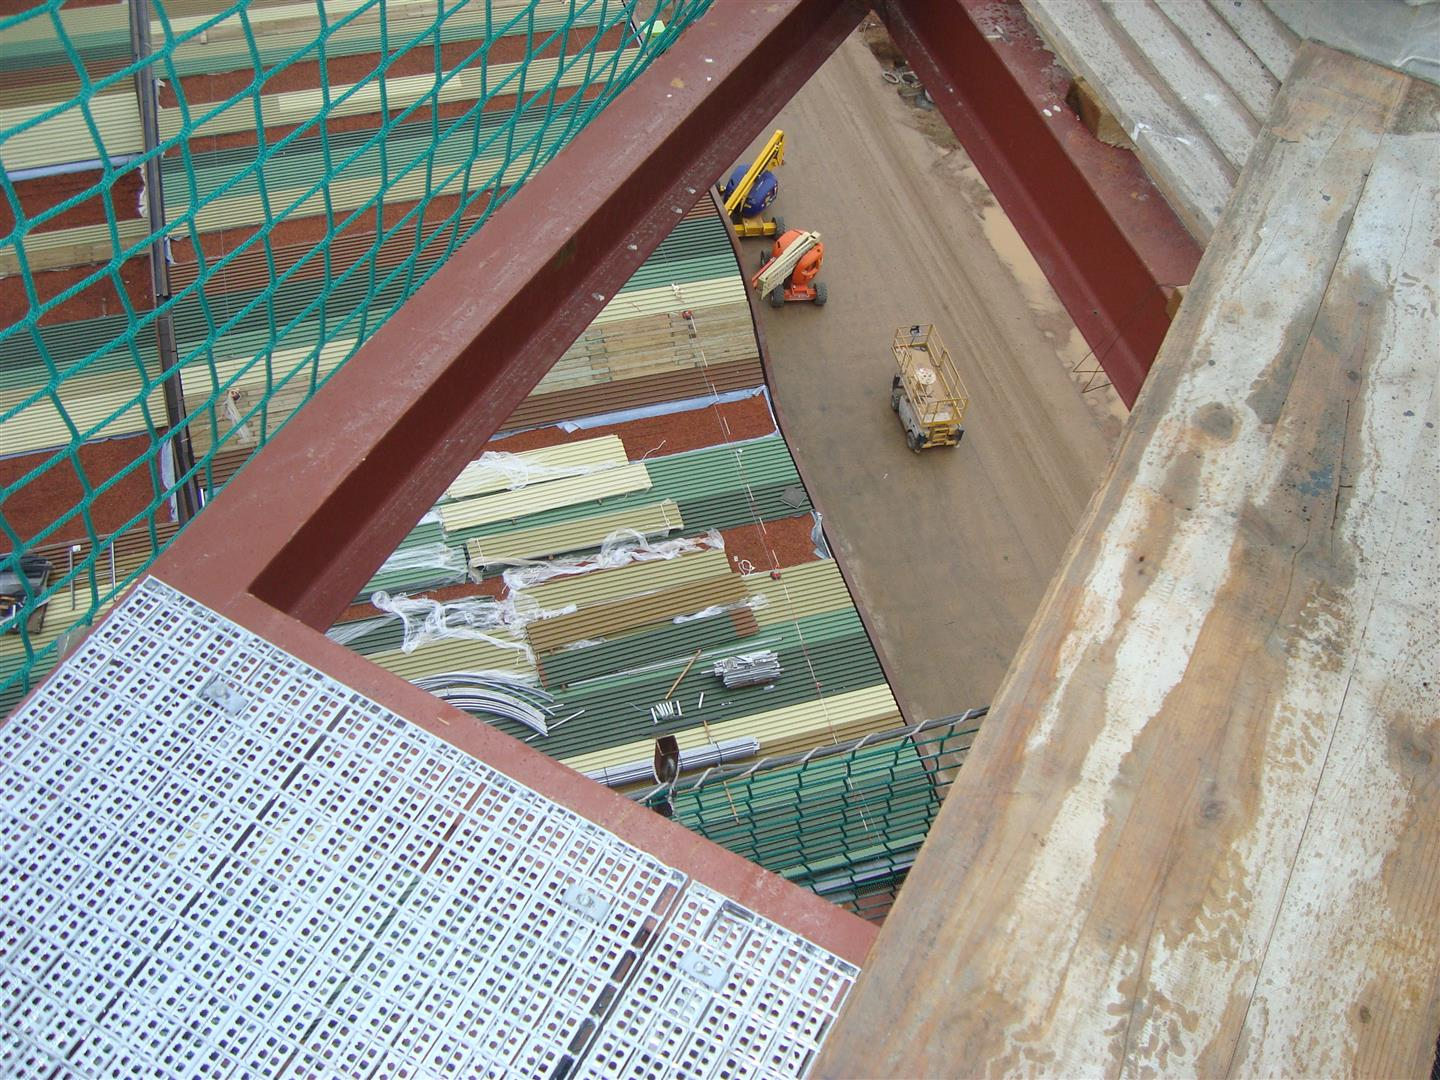 FOTOS AEROPORT 009